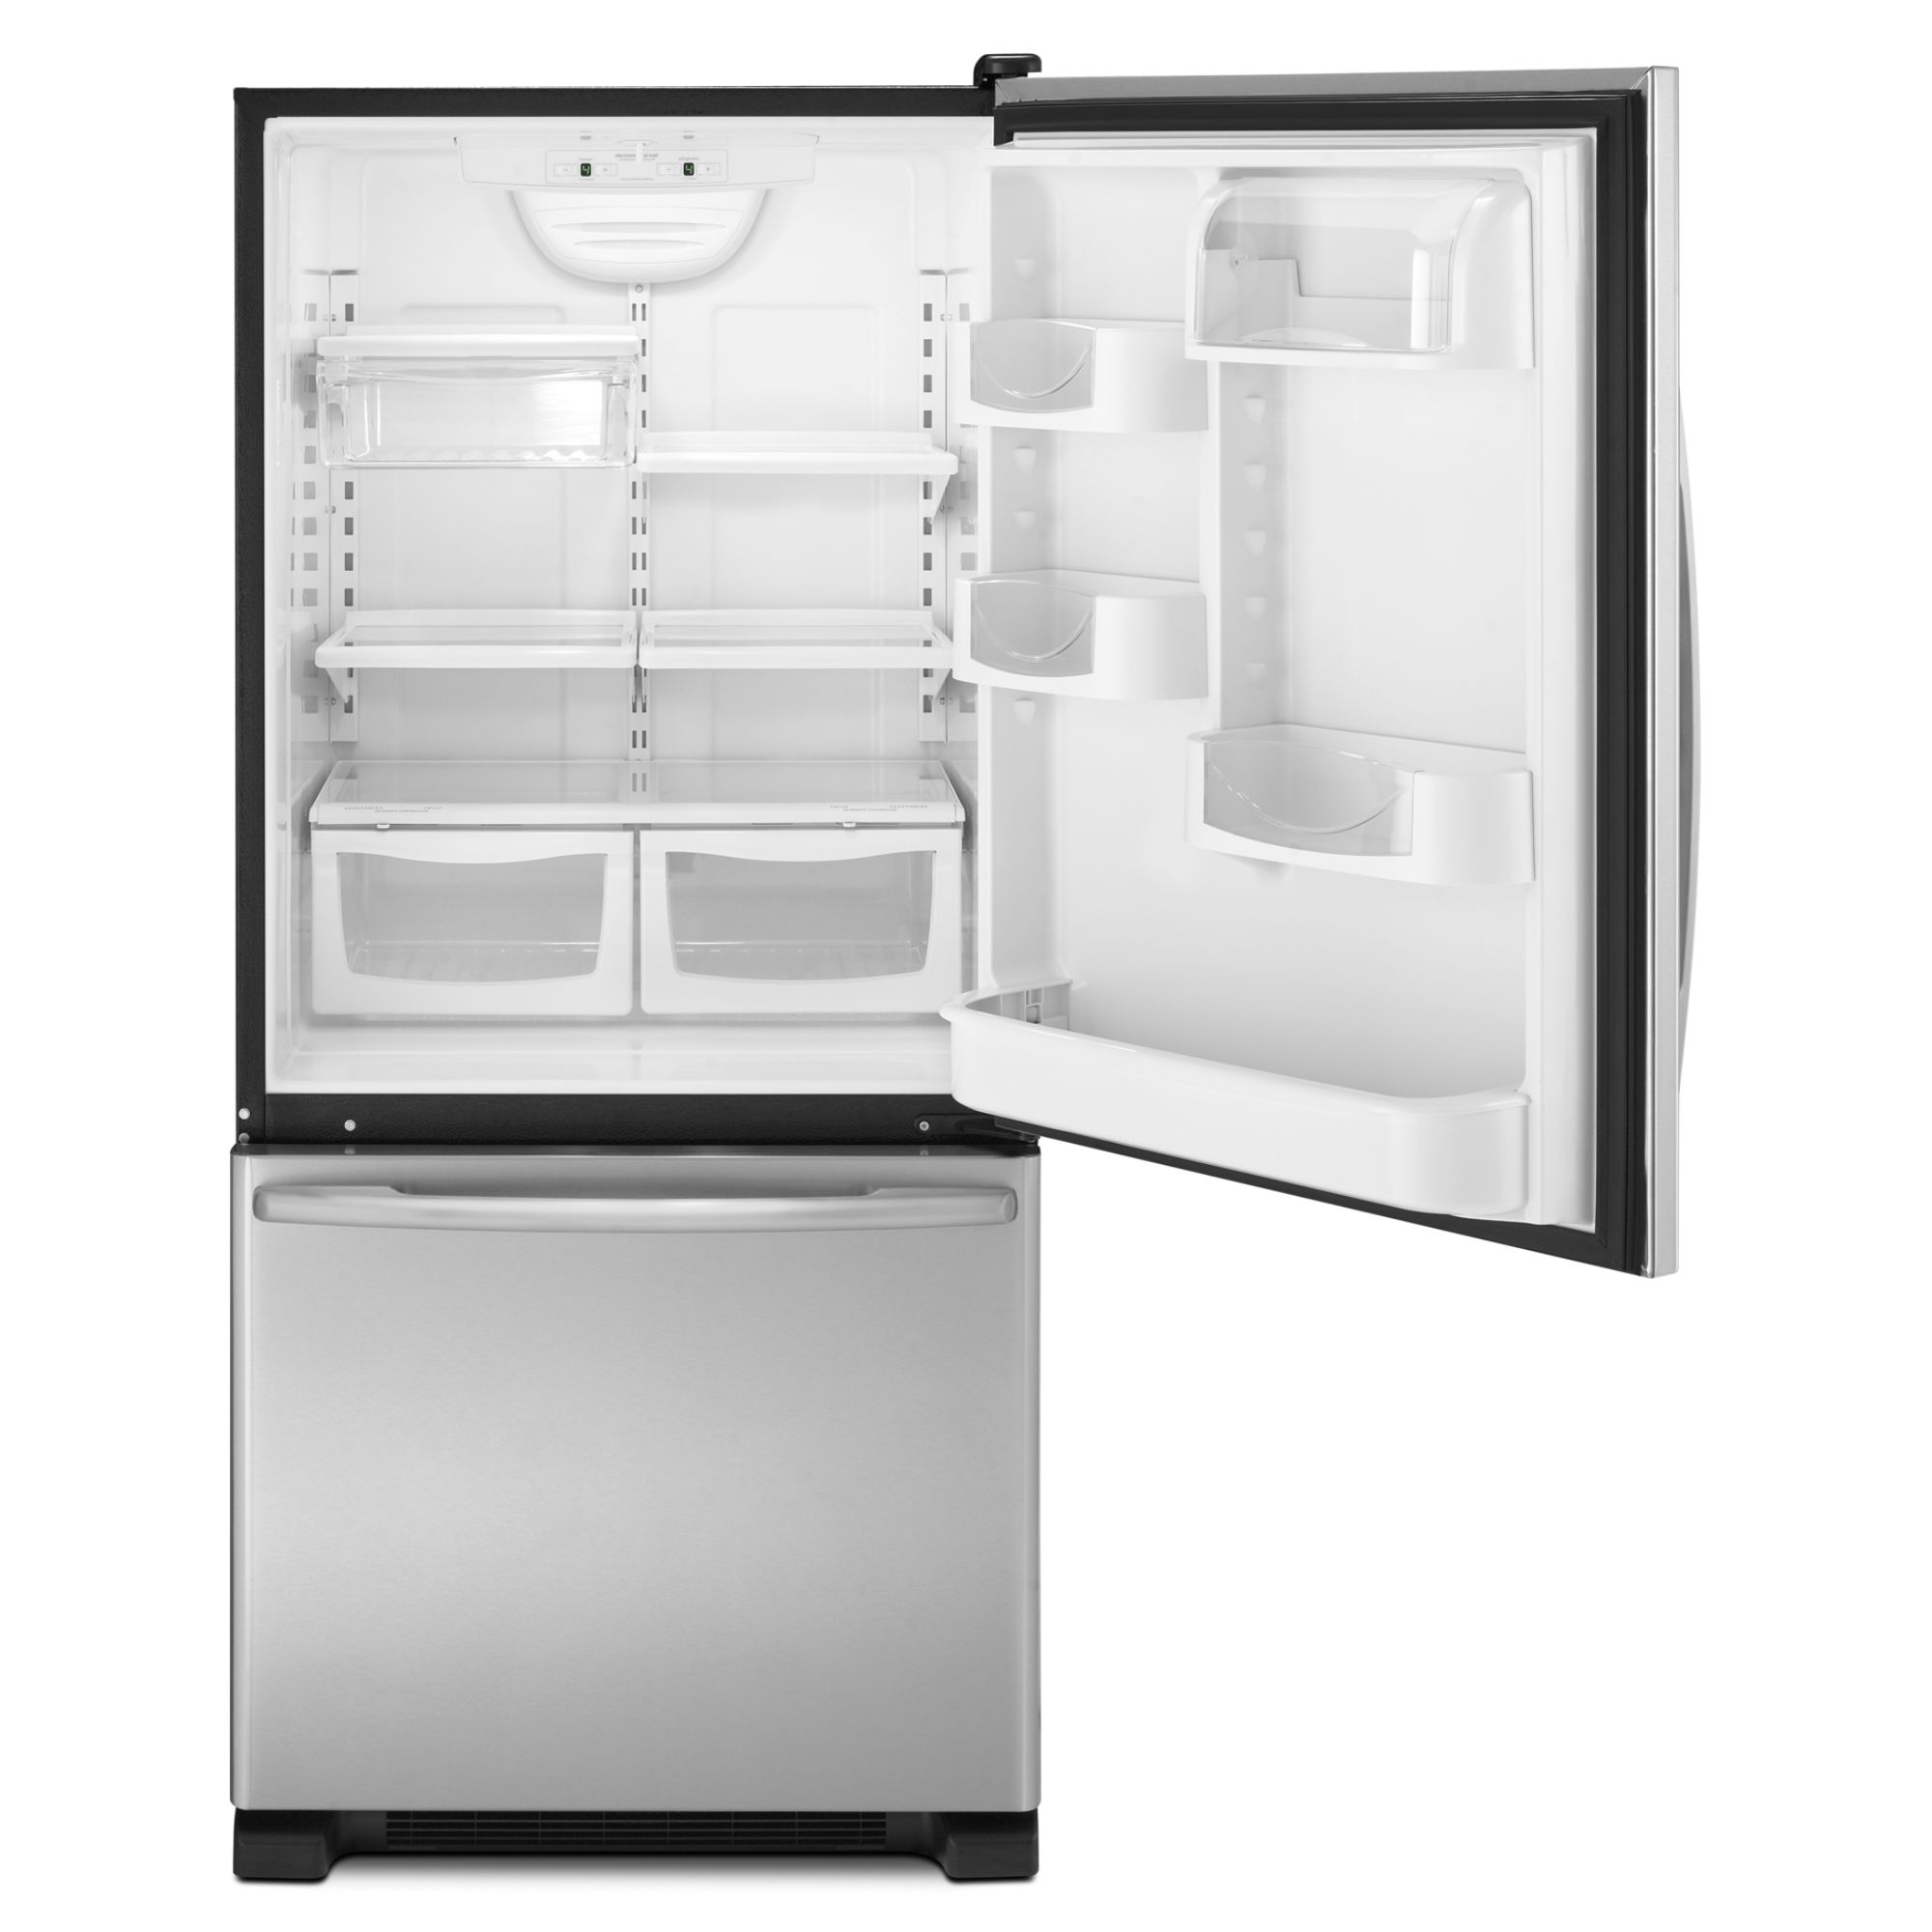 Maytag 18.5 cu. ft. Bottom-Freezer Refrigerator - Stainless